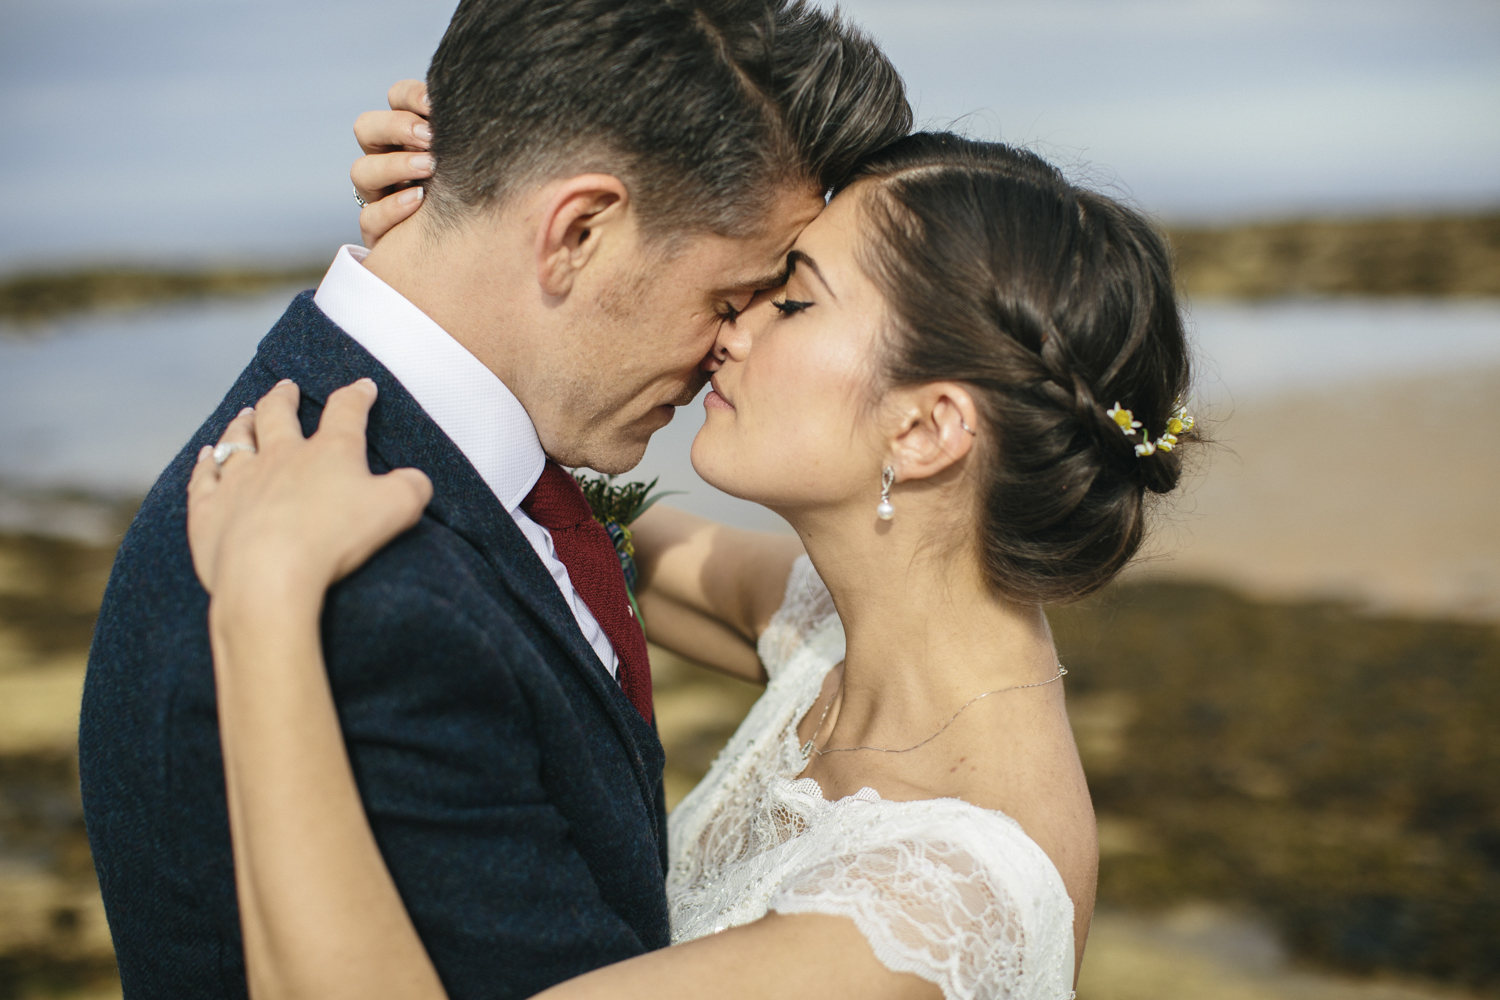 Alternative_wedding_photographer_scotland_fife_standrews_kinkell-1.jpg